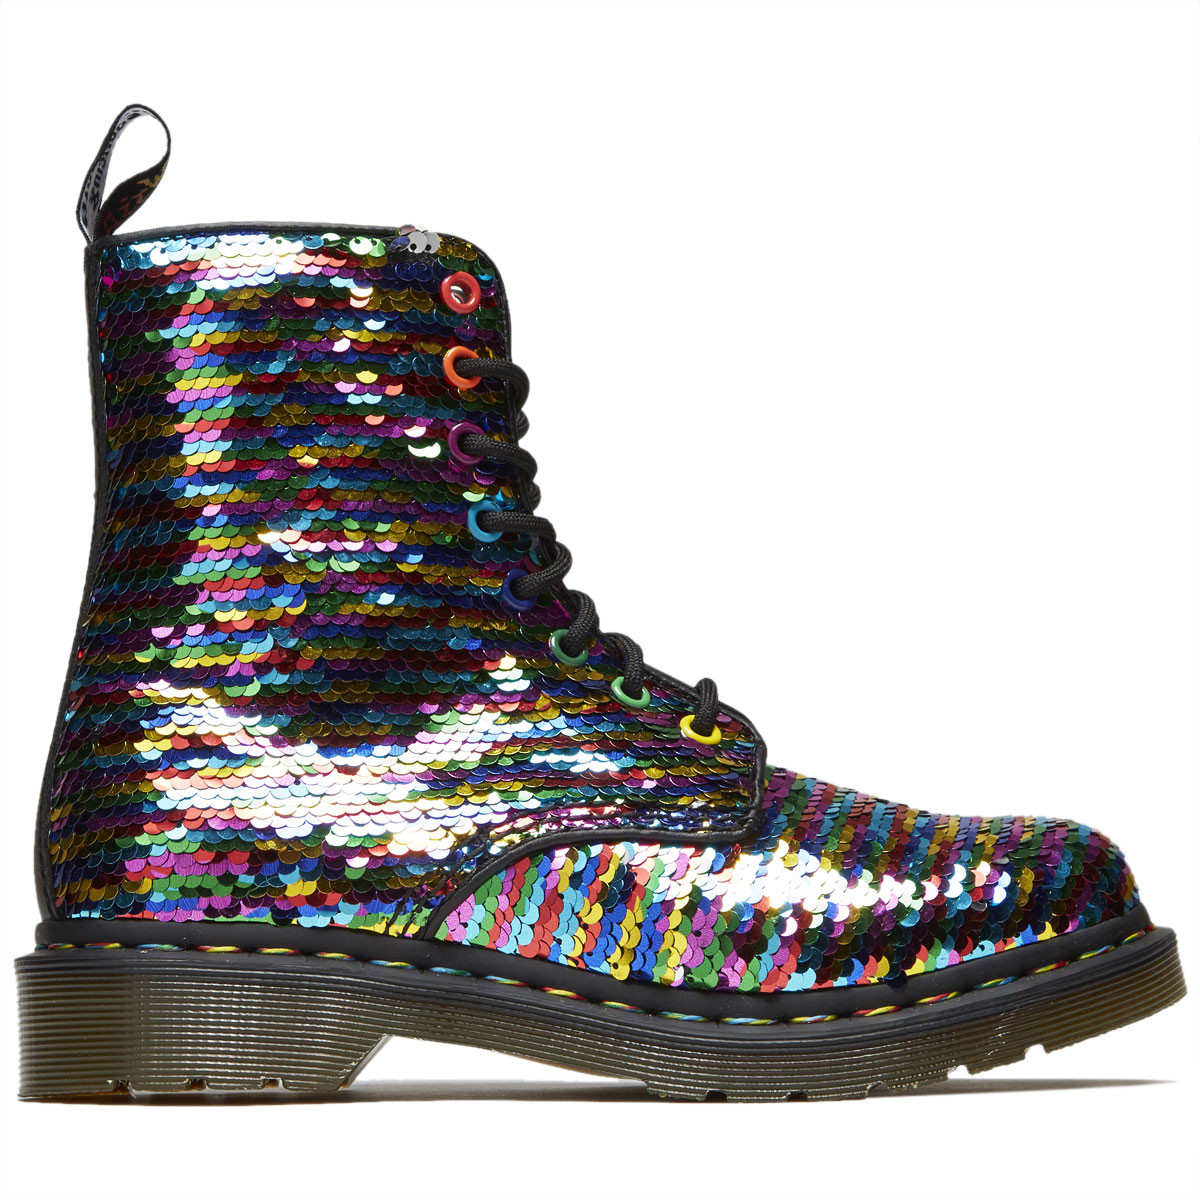 ddc849347750 Dr. Martens Womens 1460 8 Eye Pascal Sequin Boots - Rainbow